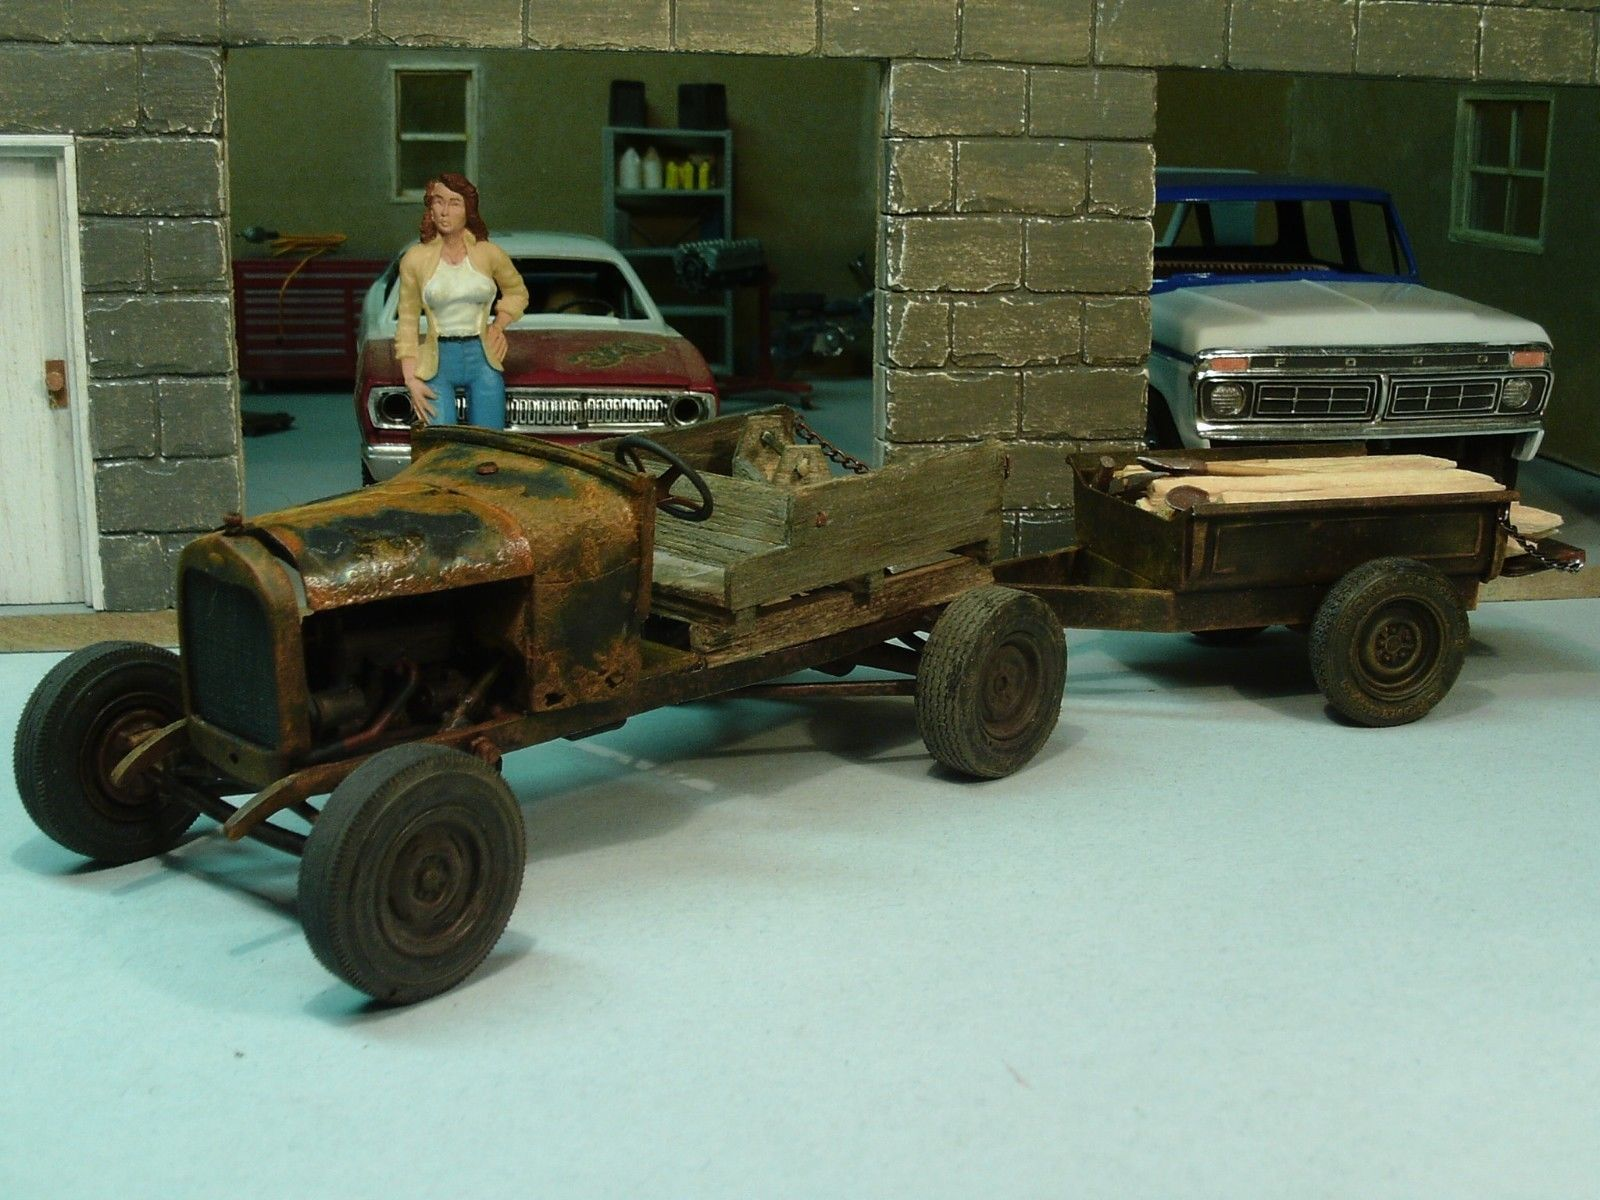 BUILT 1929 MODEL A FORD DOODLEBUG FARM TRUCK TRACTOR JUNKYARD DIORAMA BARN FIND